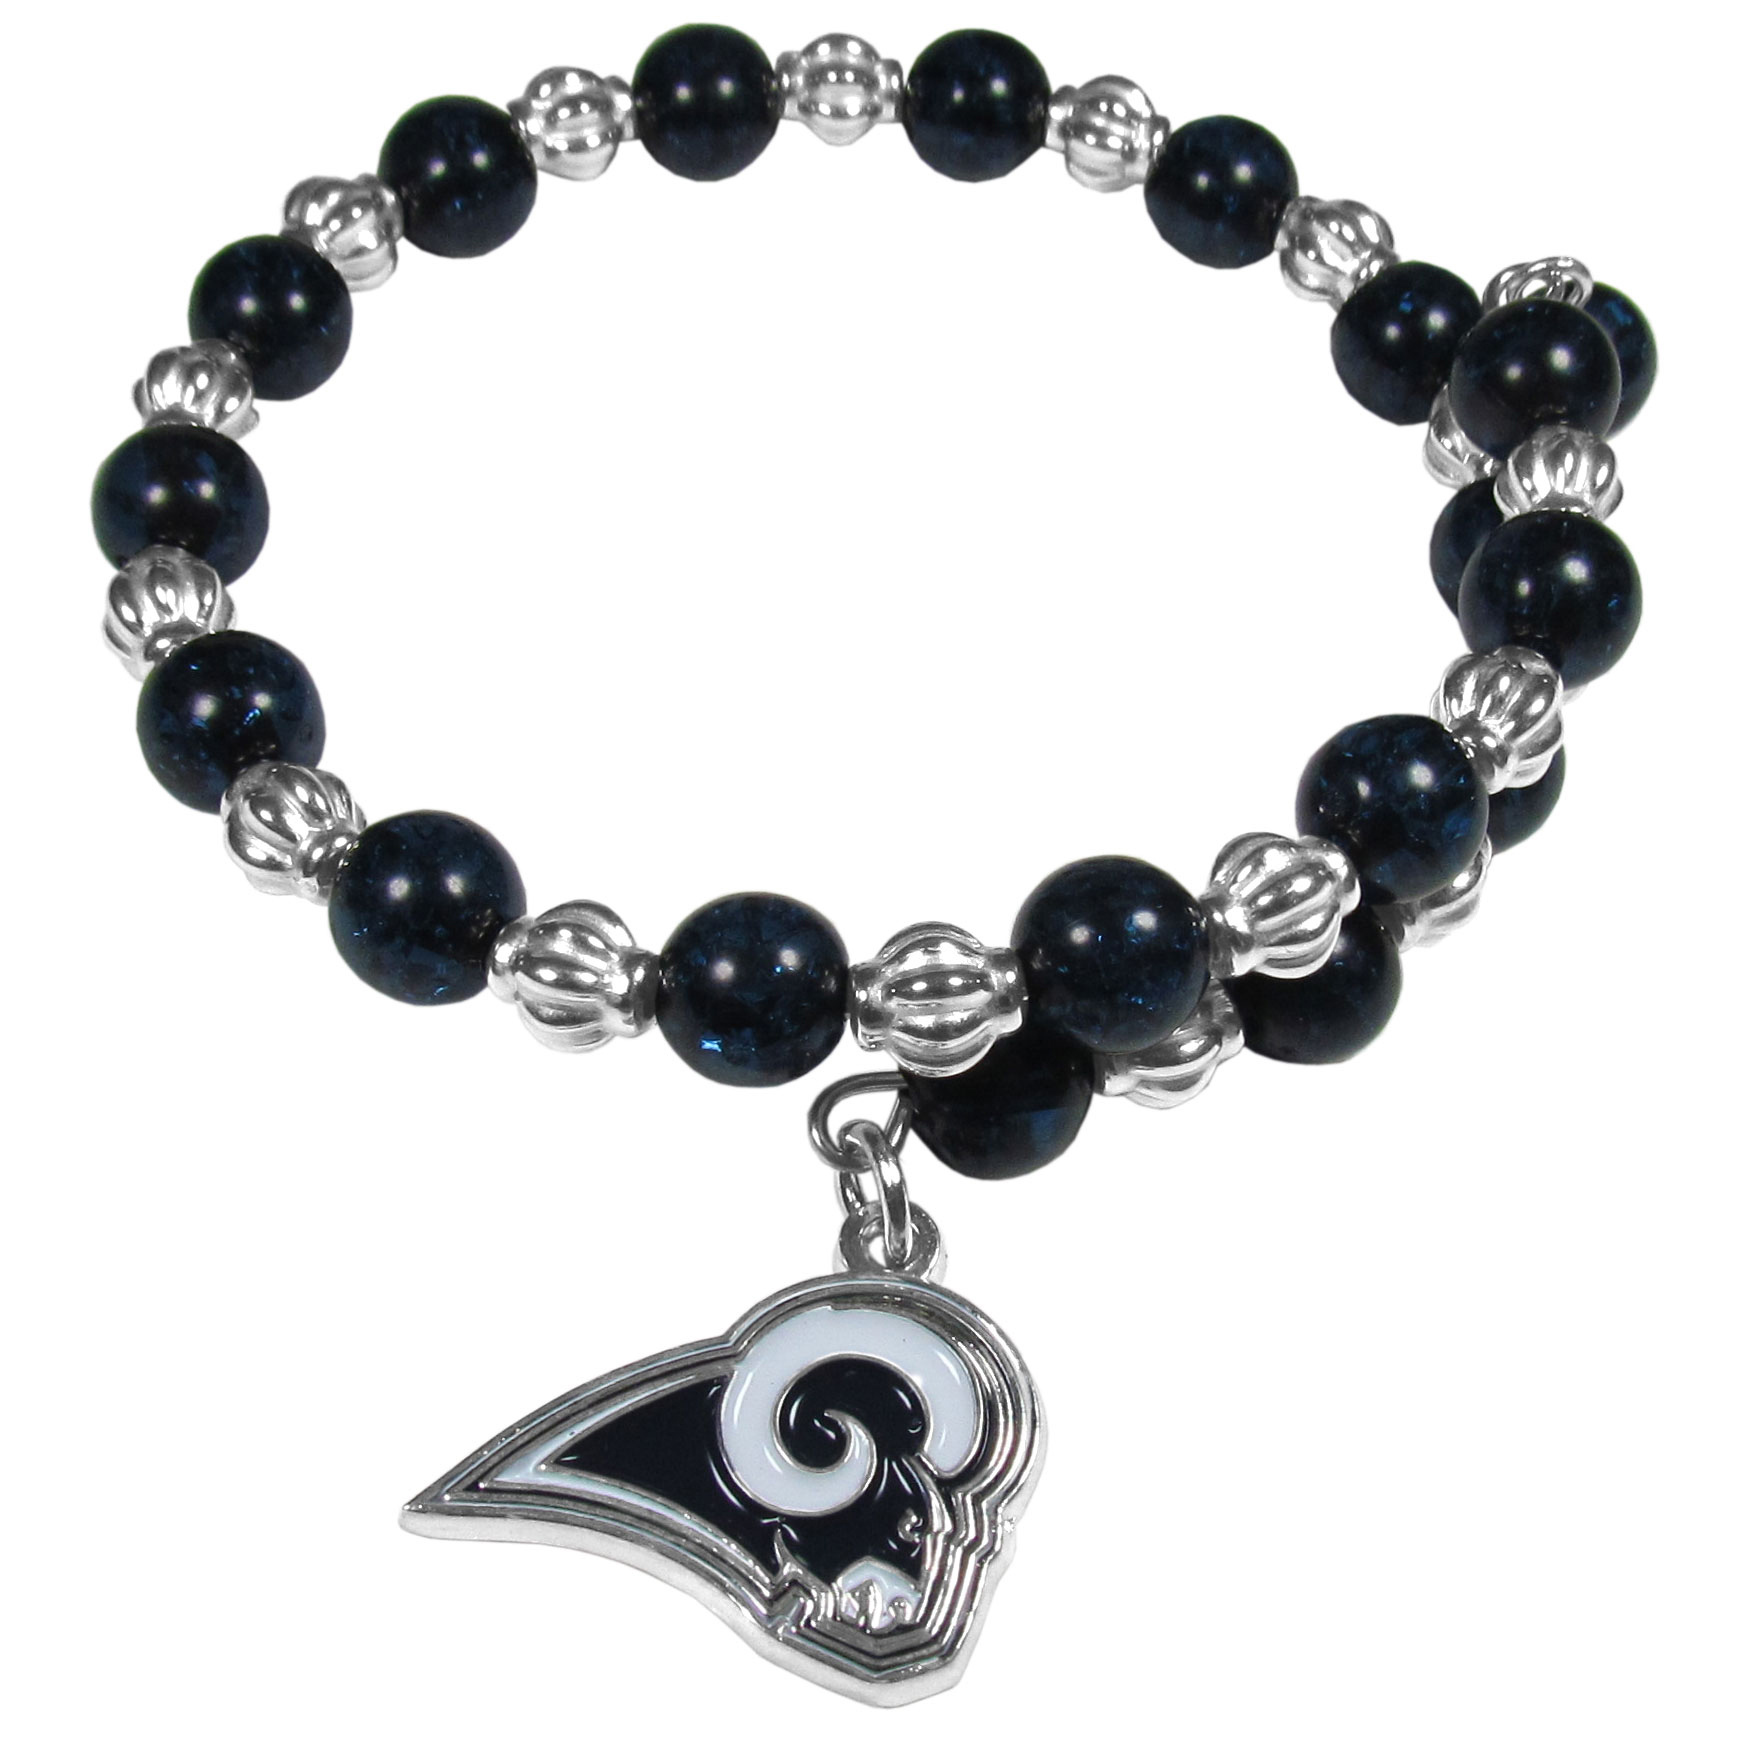 Los Angeles Rams Bead Memory Wire Bracelet - Our Los Angeles Rams memory wire bead bracelet is trendy way to show off your love of the game. The double wrap bracelet is completely covered in 7.5 mm beads that are broken up with silvertoned beads creating a designer look with a sporty twist. The bracelet features a fully cast, metal team charm that has expertly enameled team colors. This fashion jewelry piece is a must-have for the die-hard who is looking for an eye-catching addition to their fan jewelry collection.